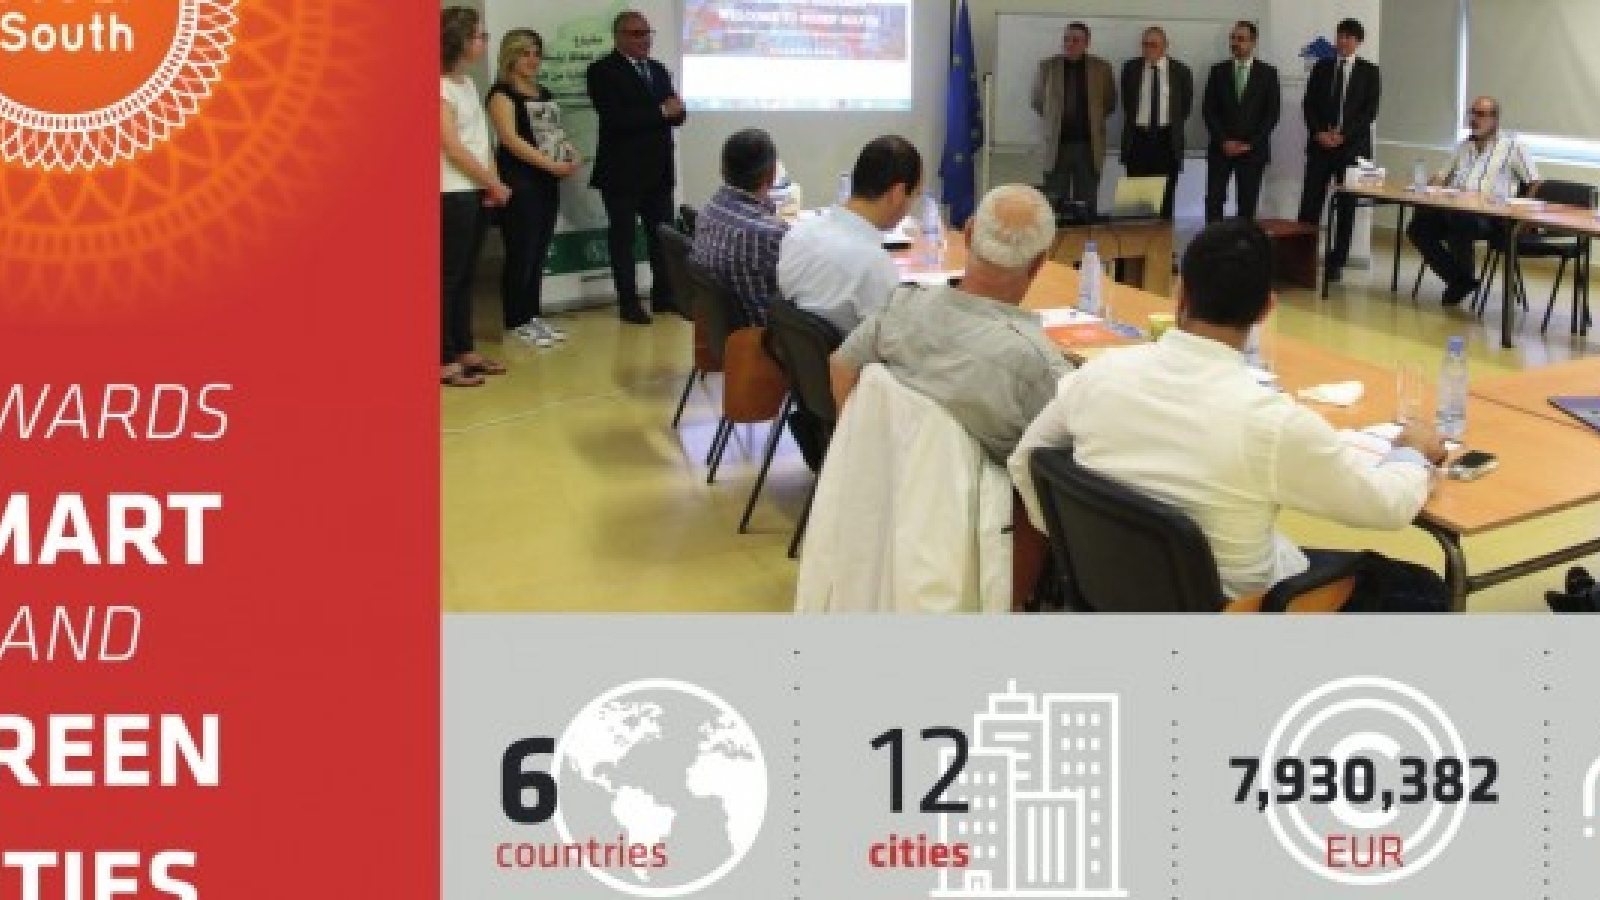 SUDEP South brings it success stories to Beirut Energy Forum